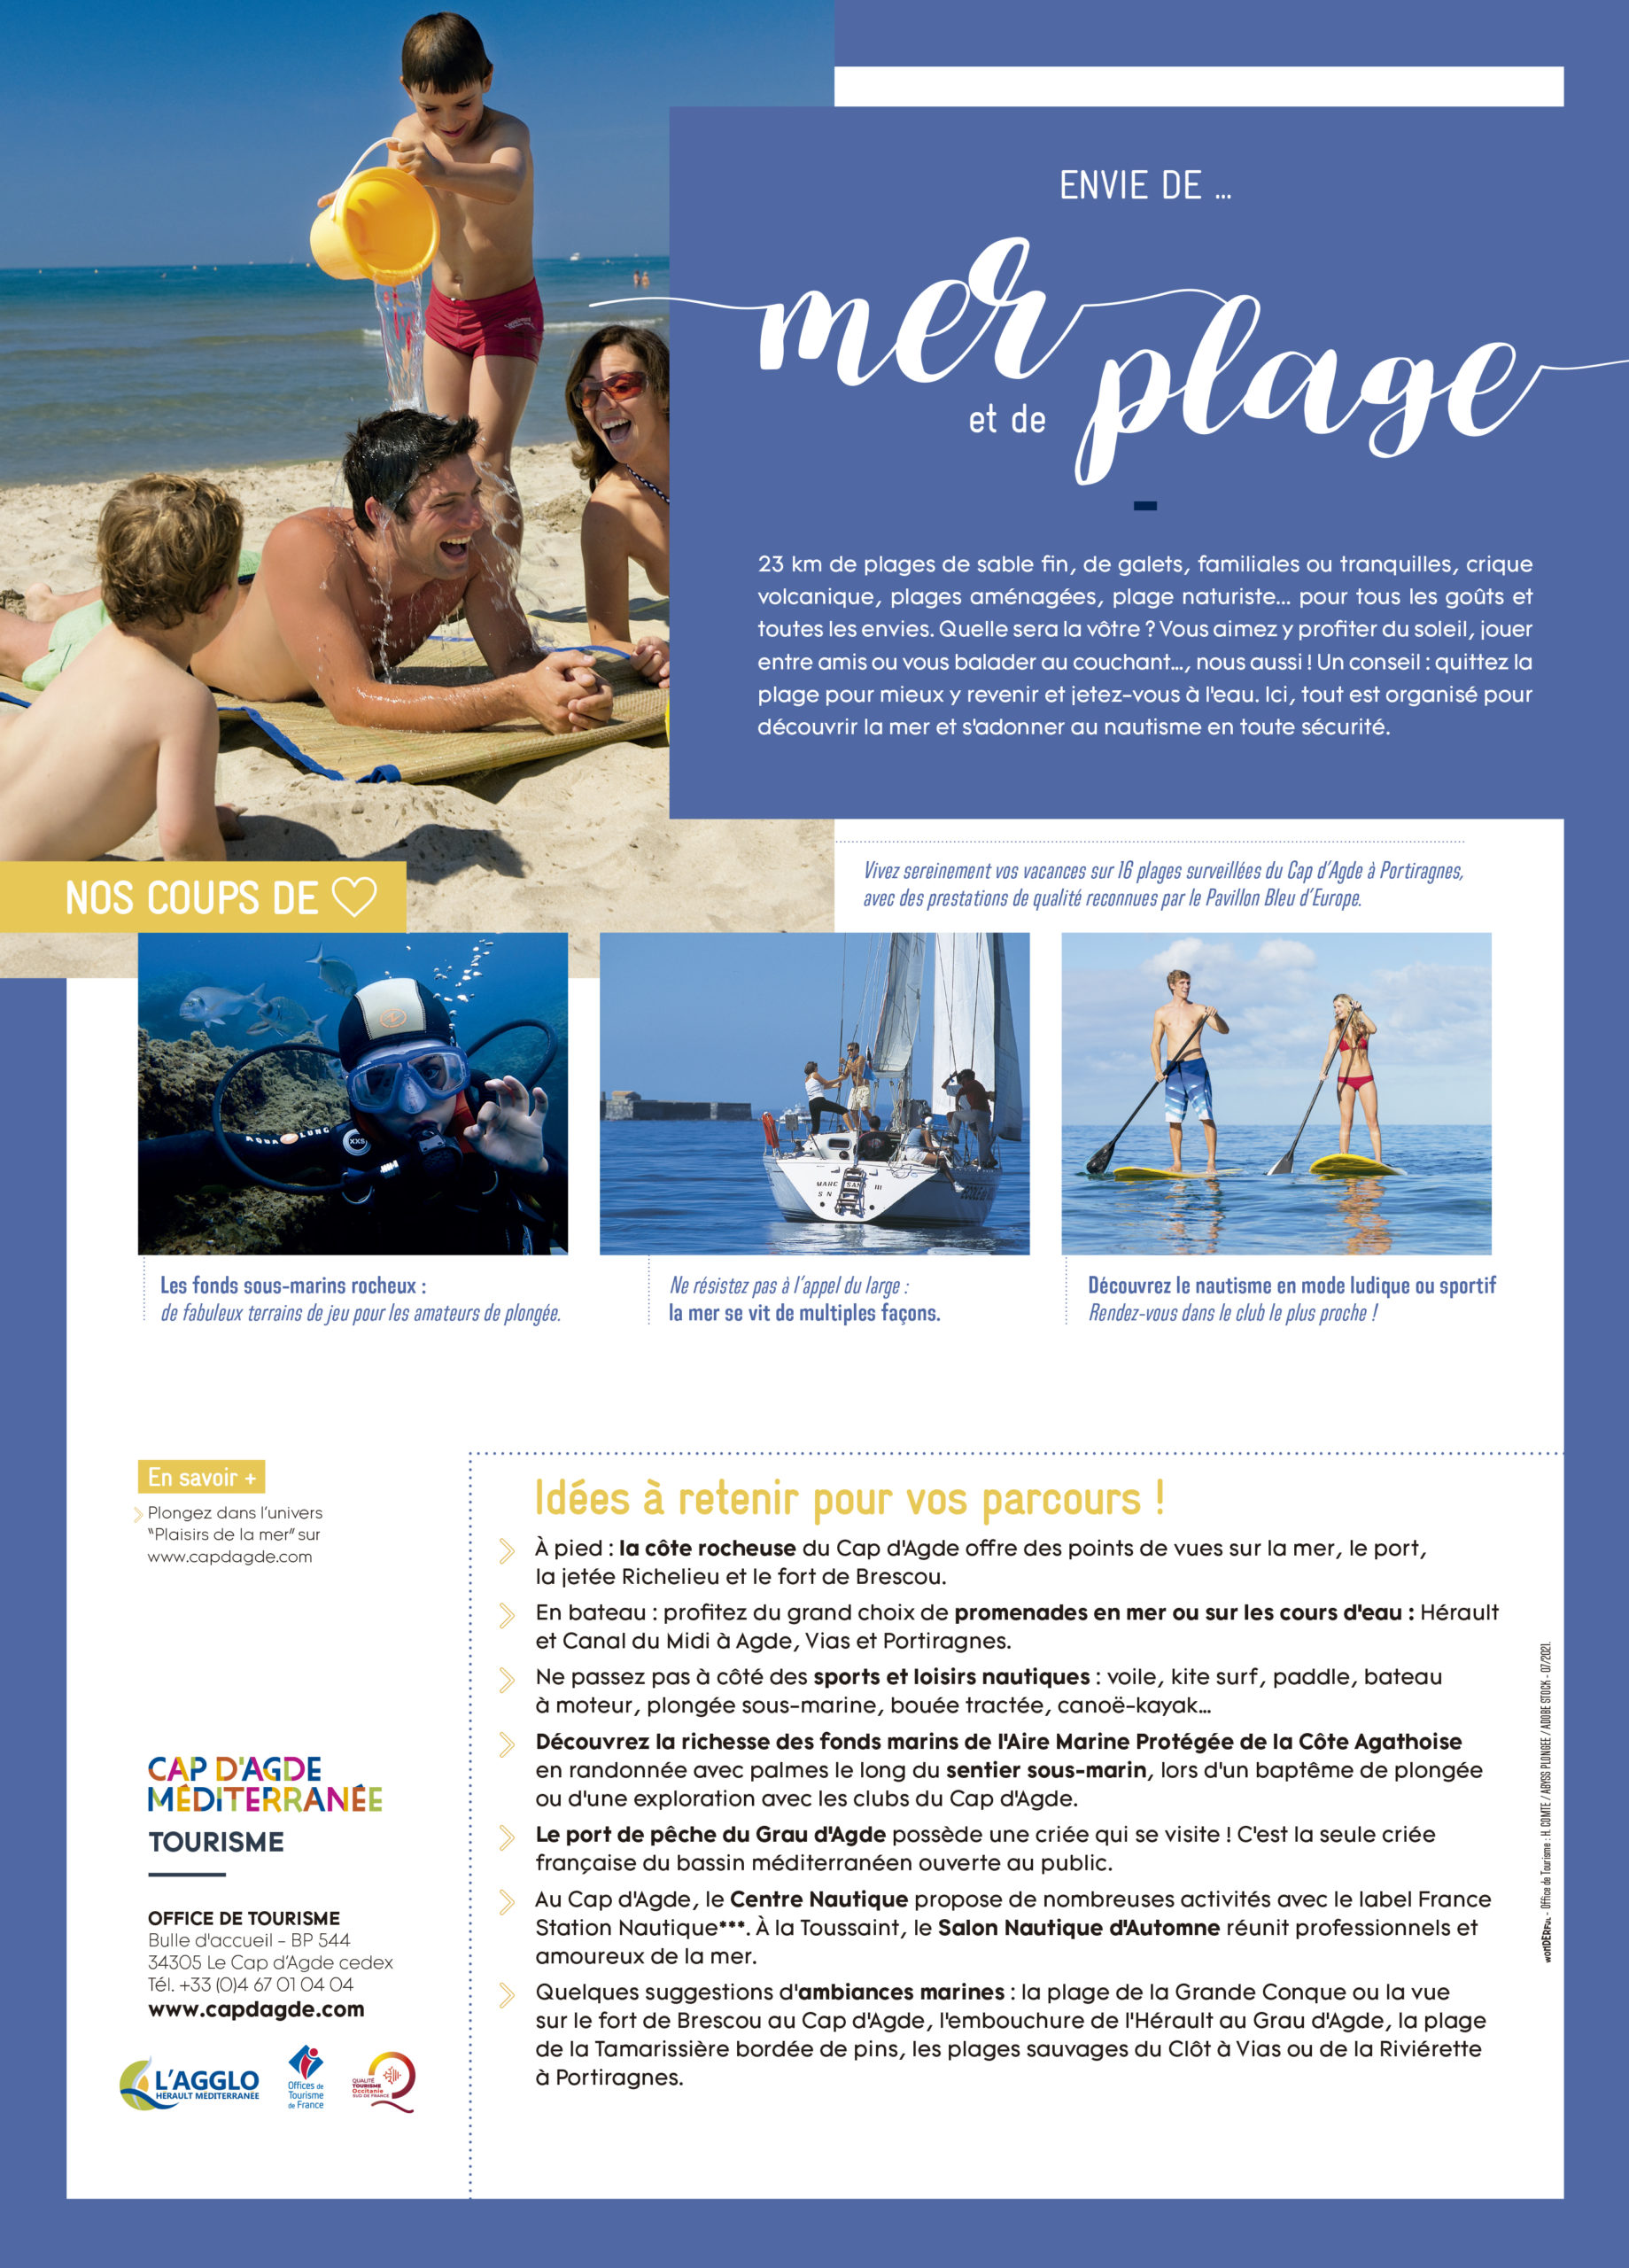 CAPINFOS-MerEtPlage-240x335mm-2021-07.indd